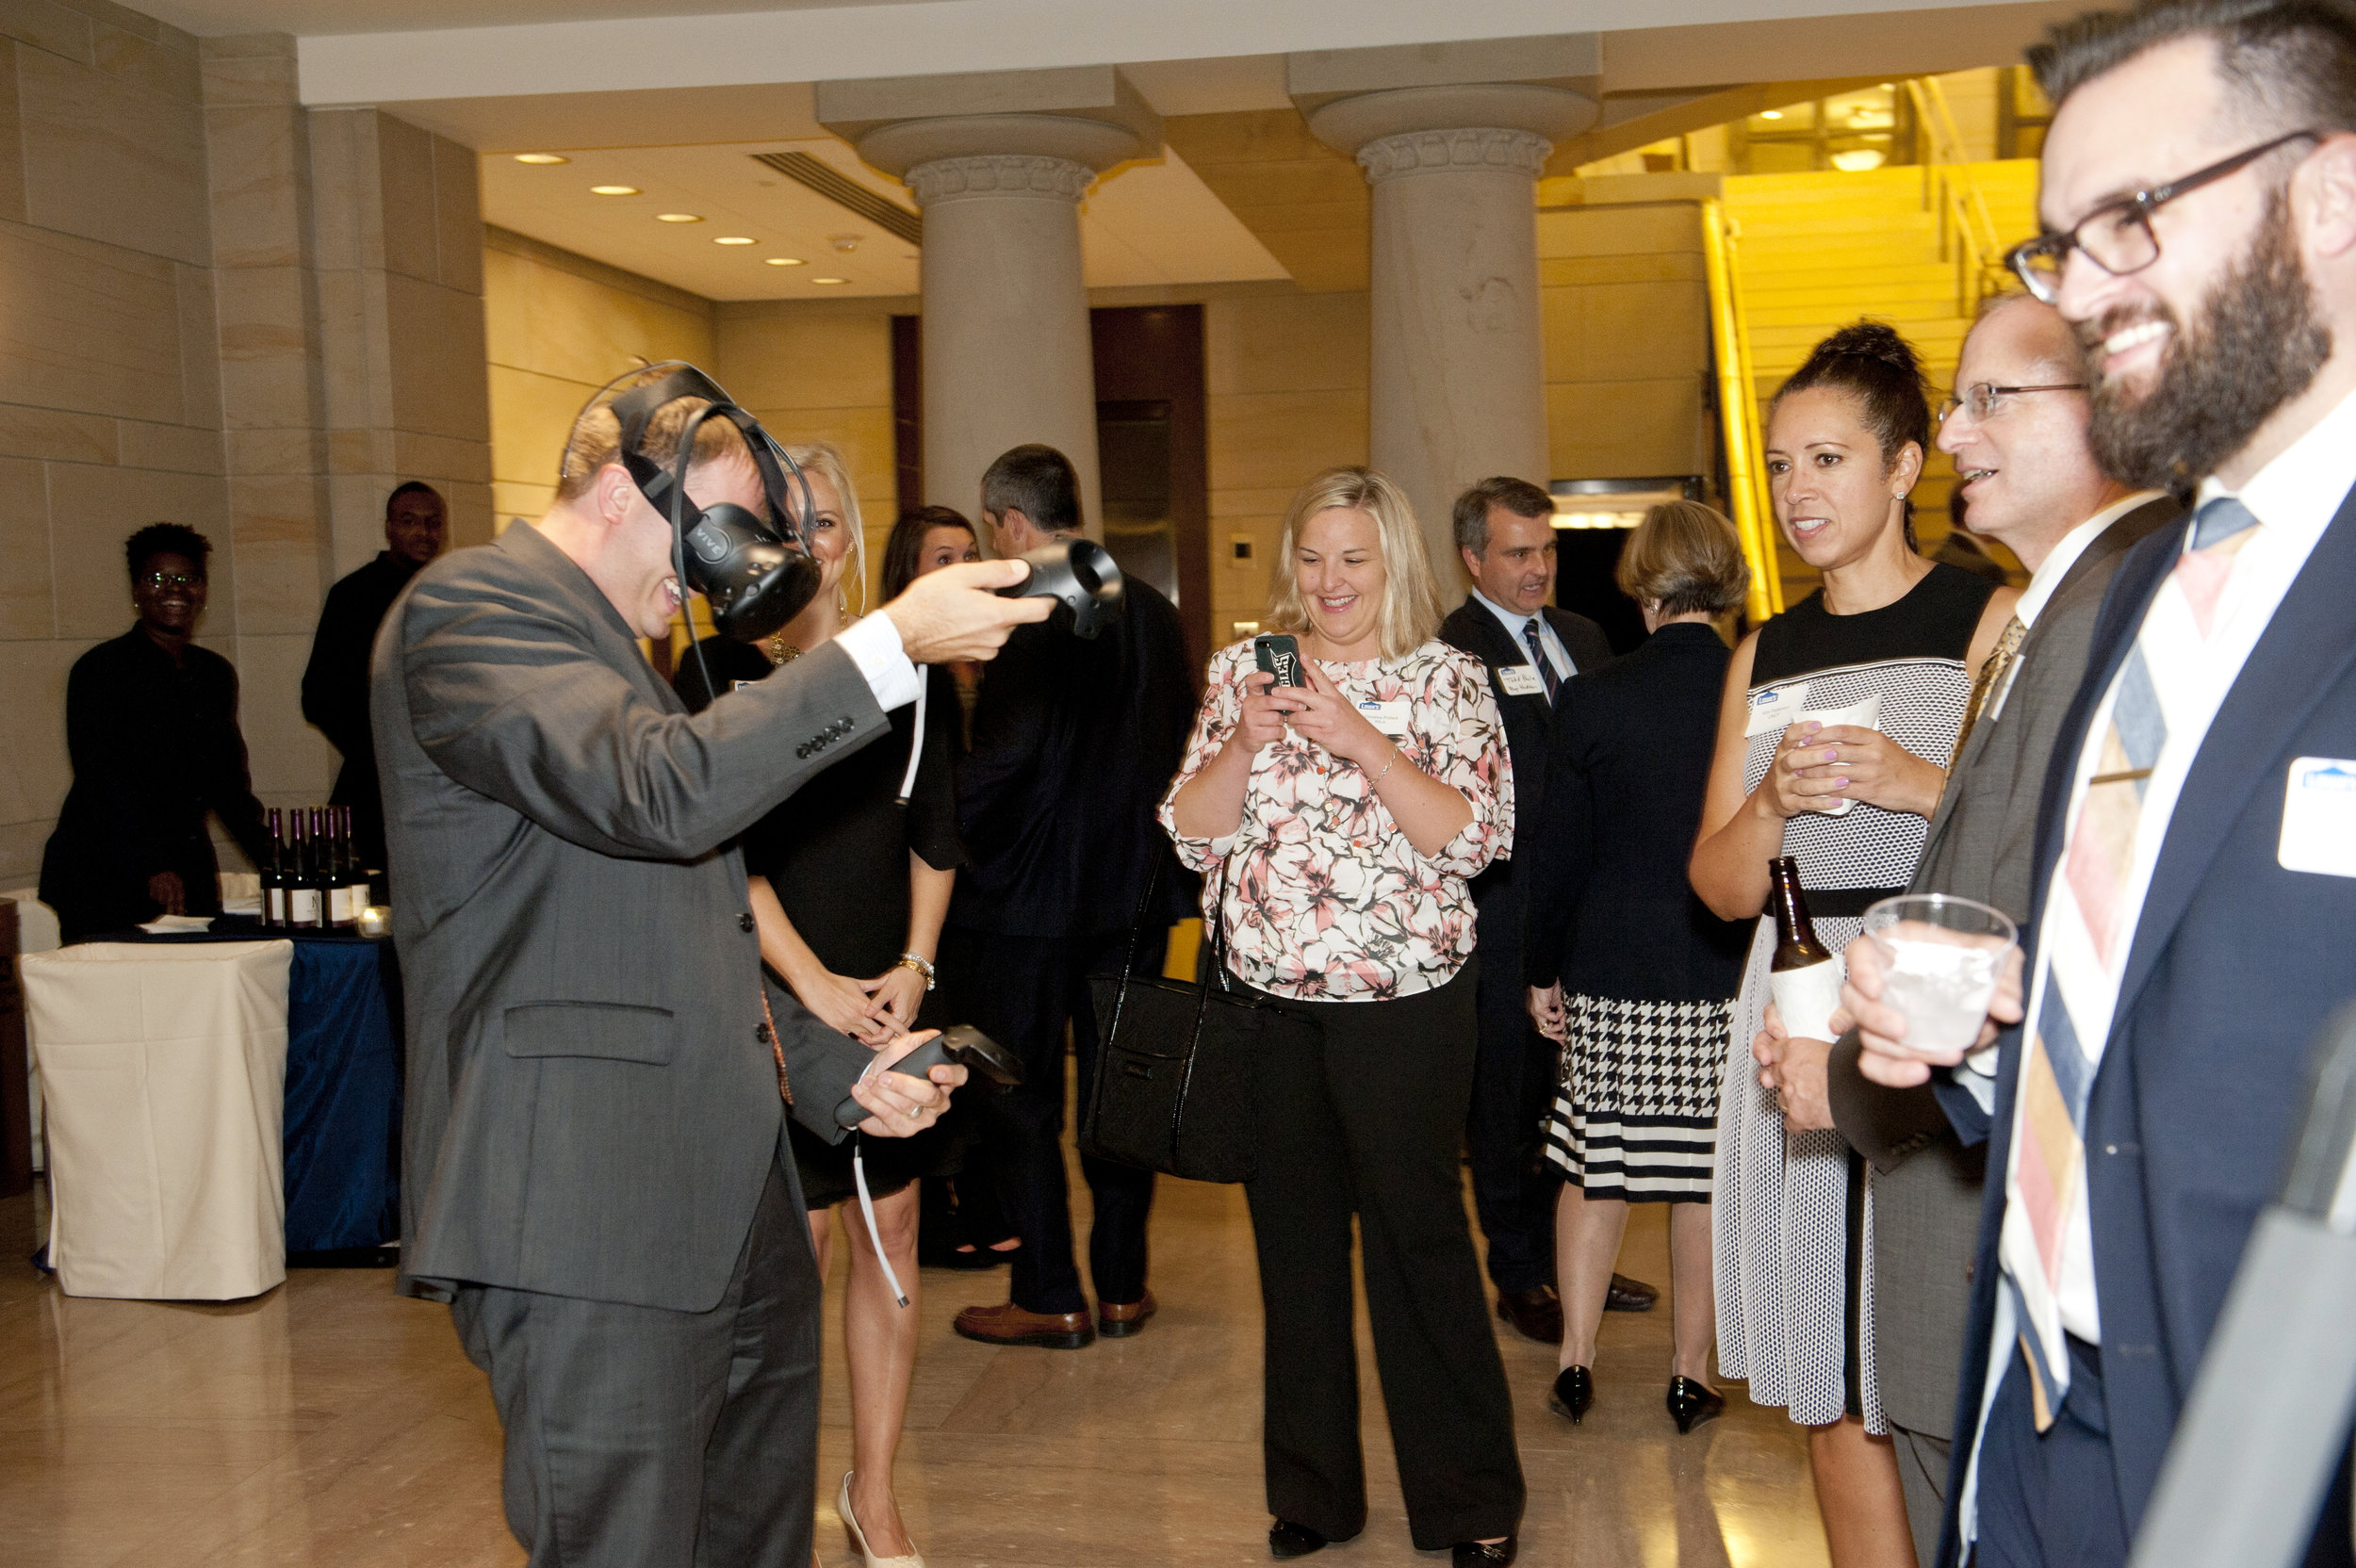 Guests interacting with our latest VR experience.